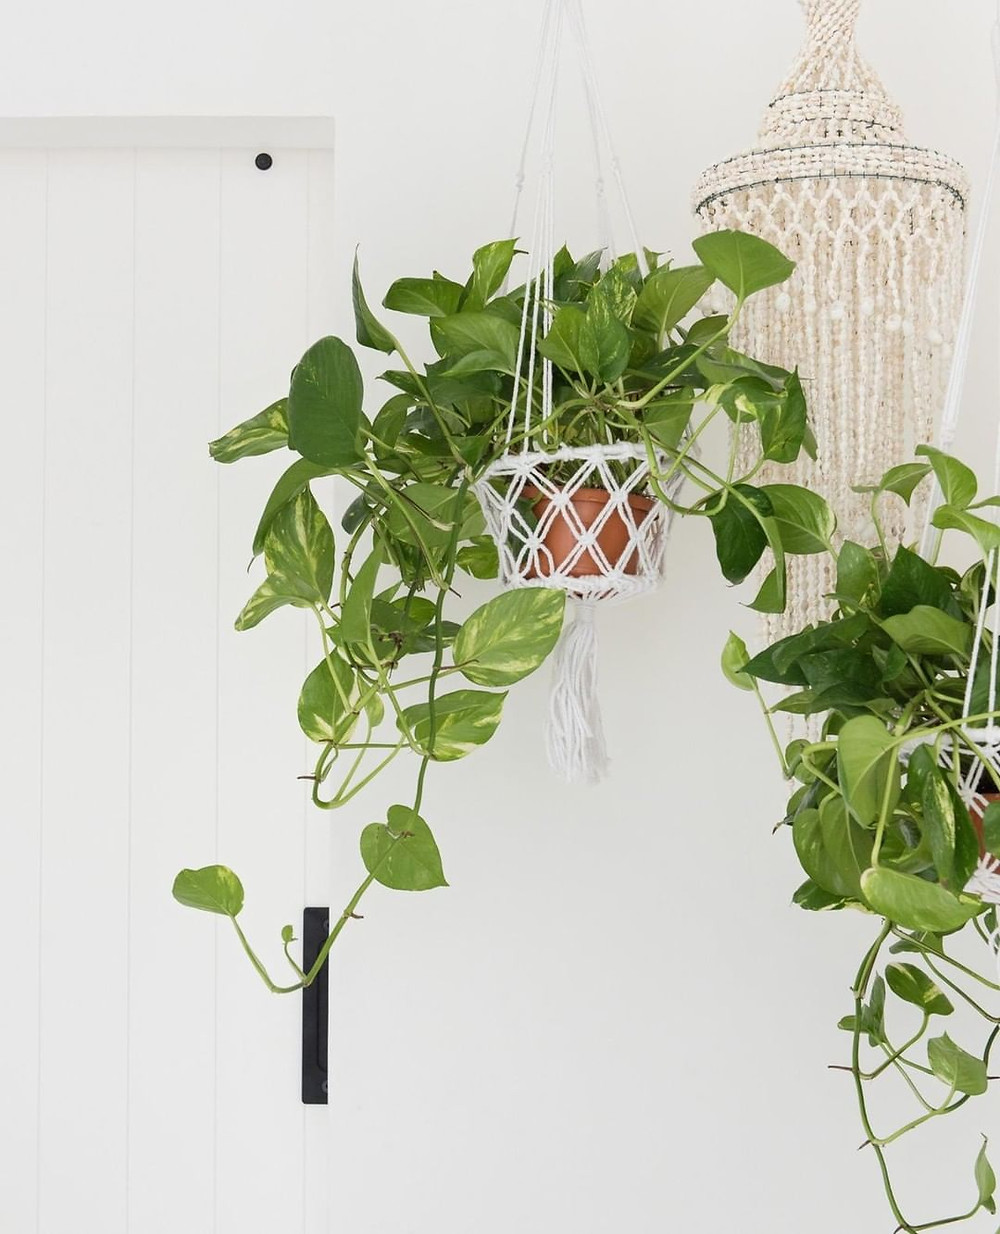 Golden Pothos Epipremnum aureum Hanging Plant Trailing Houseplants